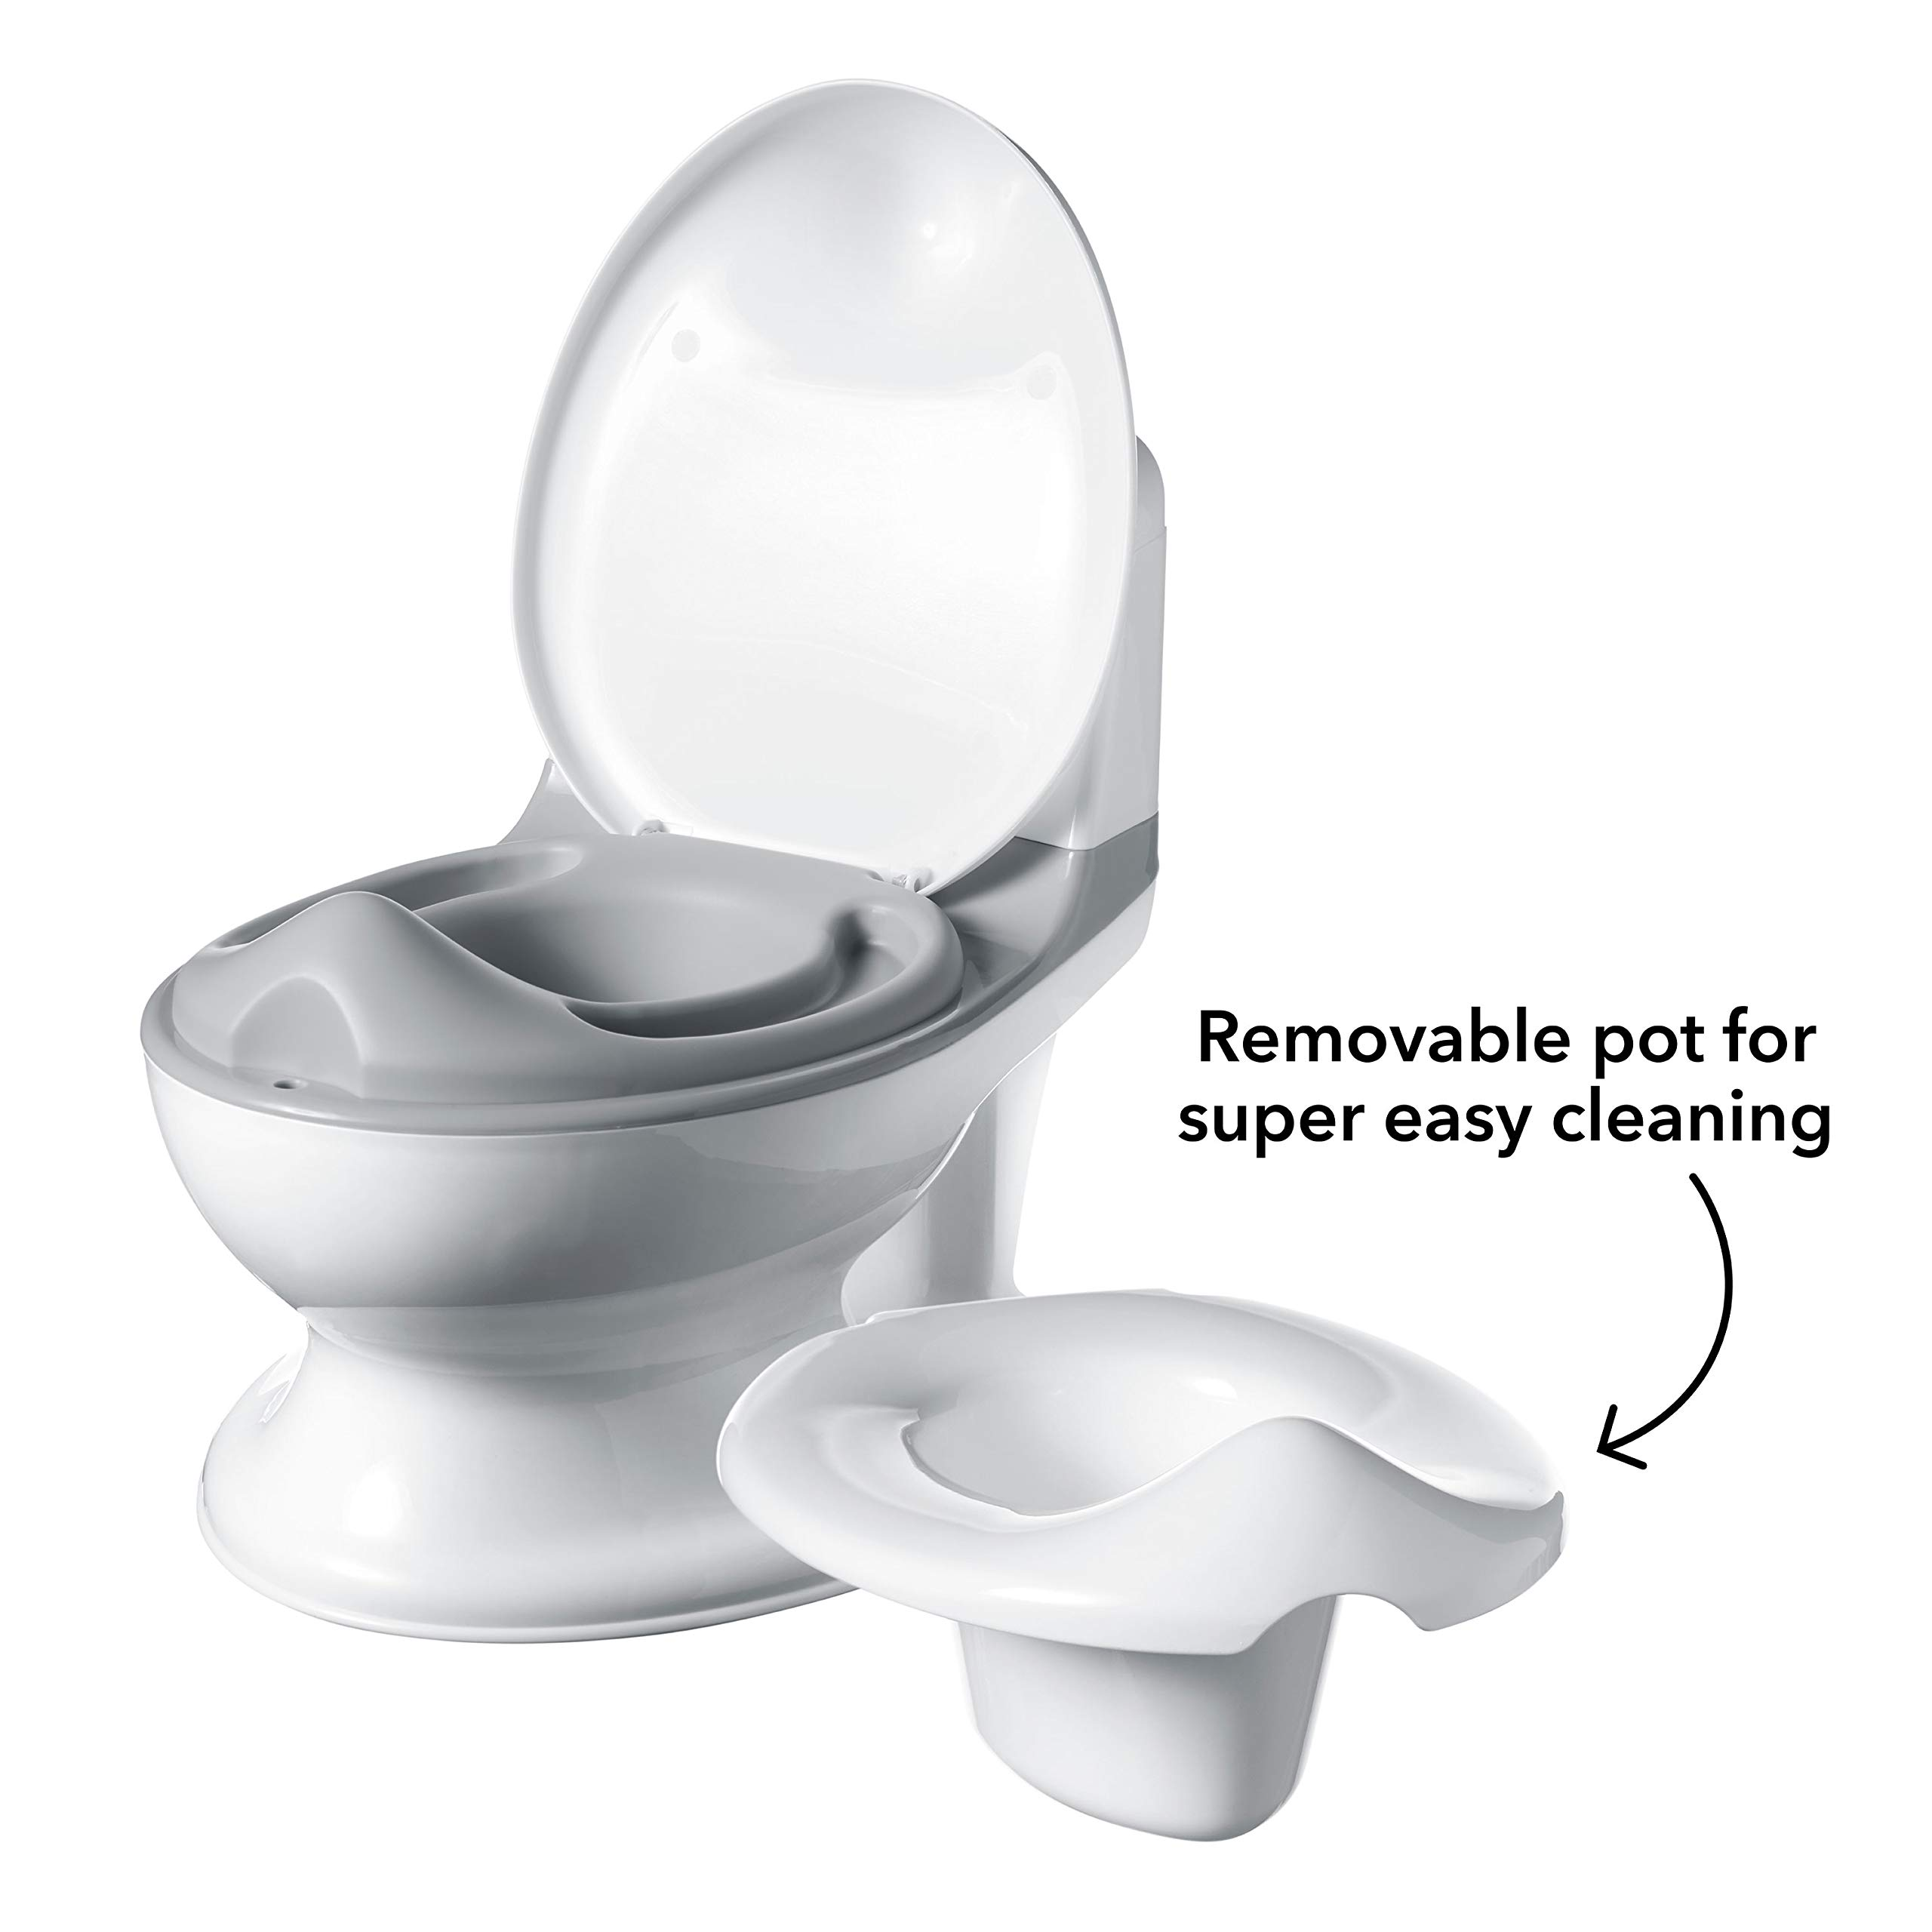 Realistic Kids Potty Training Toilet Baby Pot with Flushing Sounds ADOVEL Potty Toilet for Toddlers